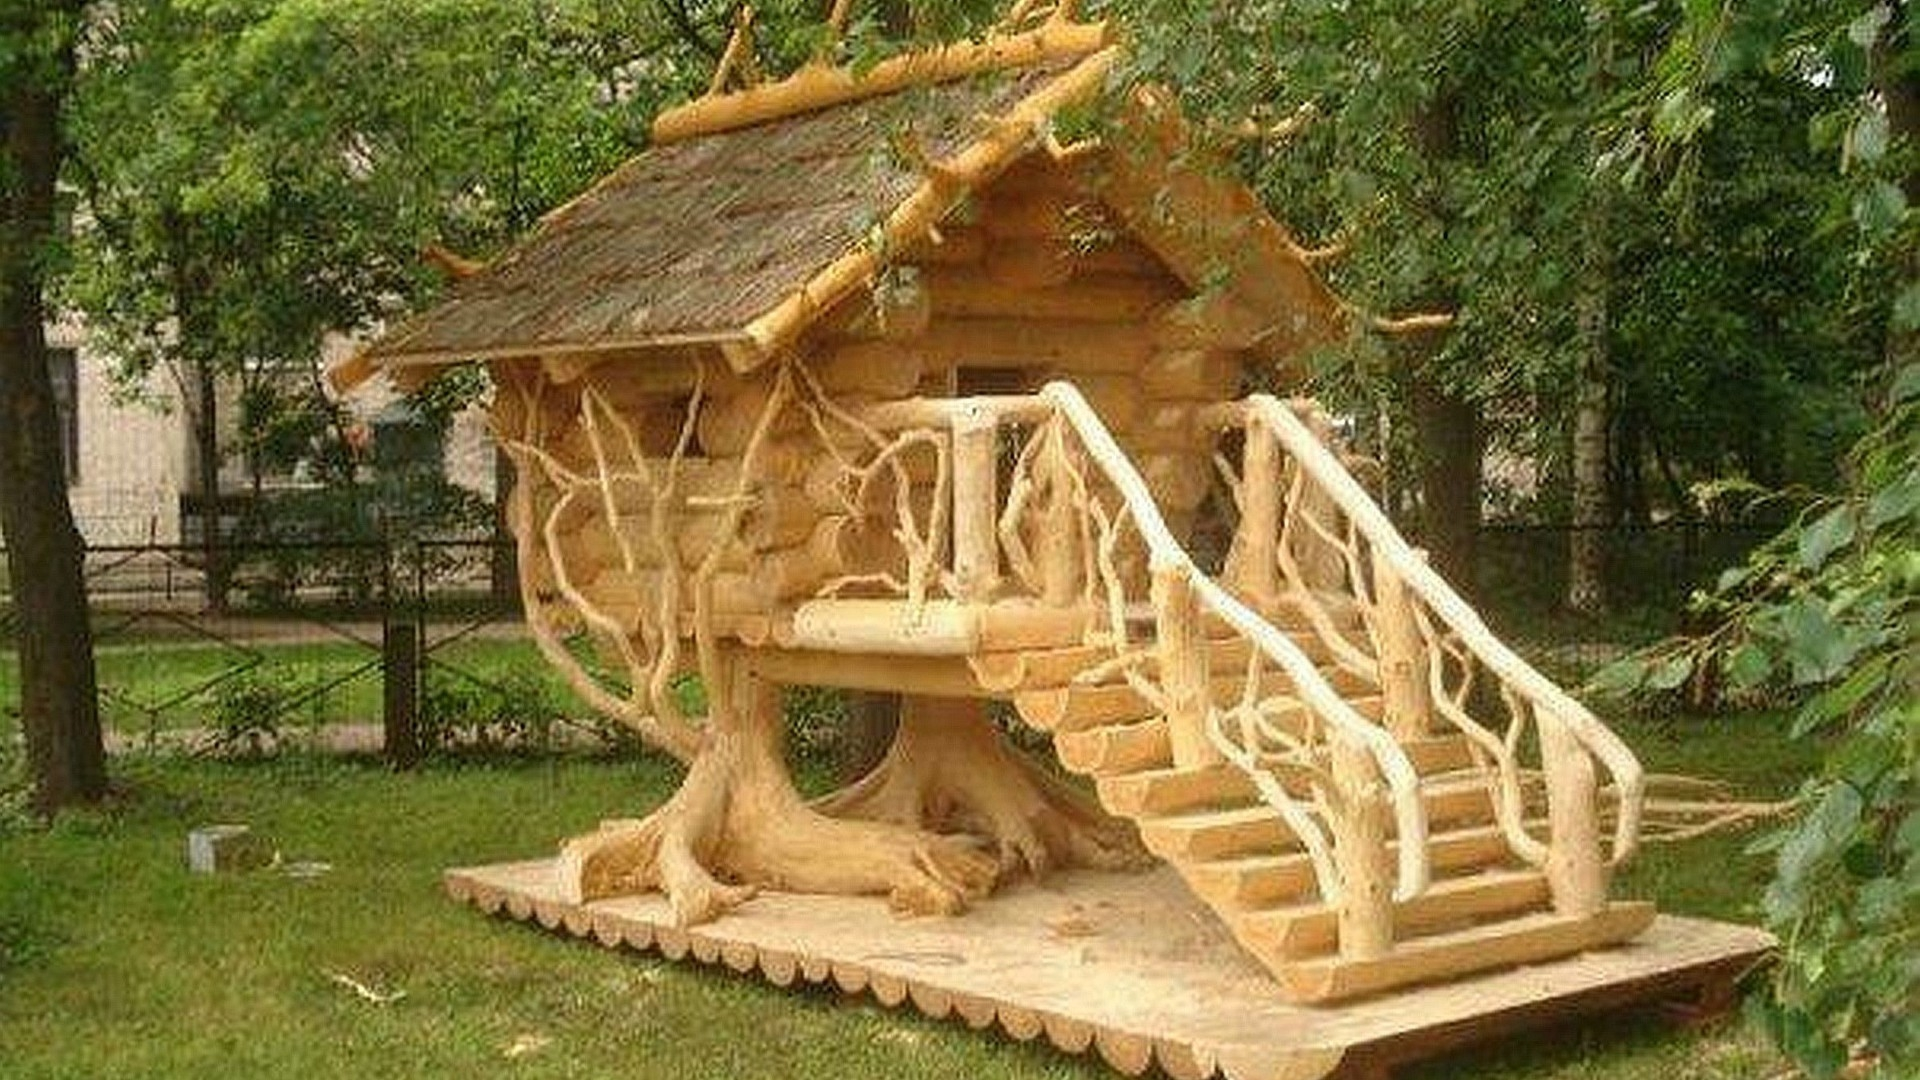 Wood playhouse for kids 1